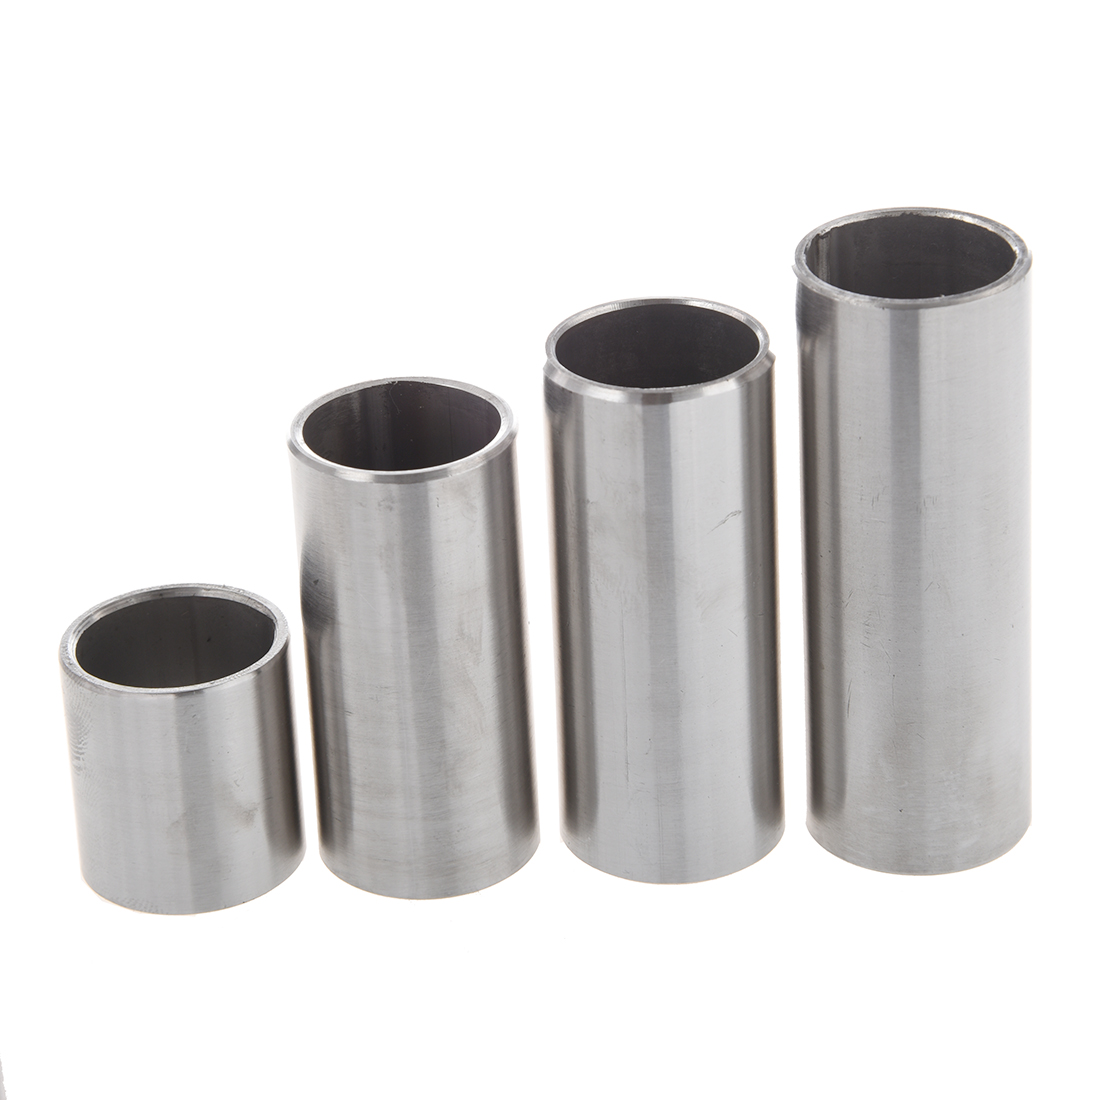 HOT 5X 4pcs Stainless Steel Guitar Slides Set / Silver Hard-chrome Plated Guitar Slides<br>